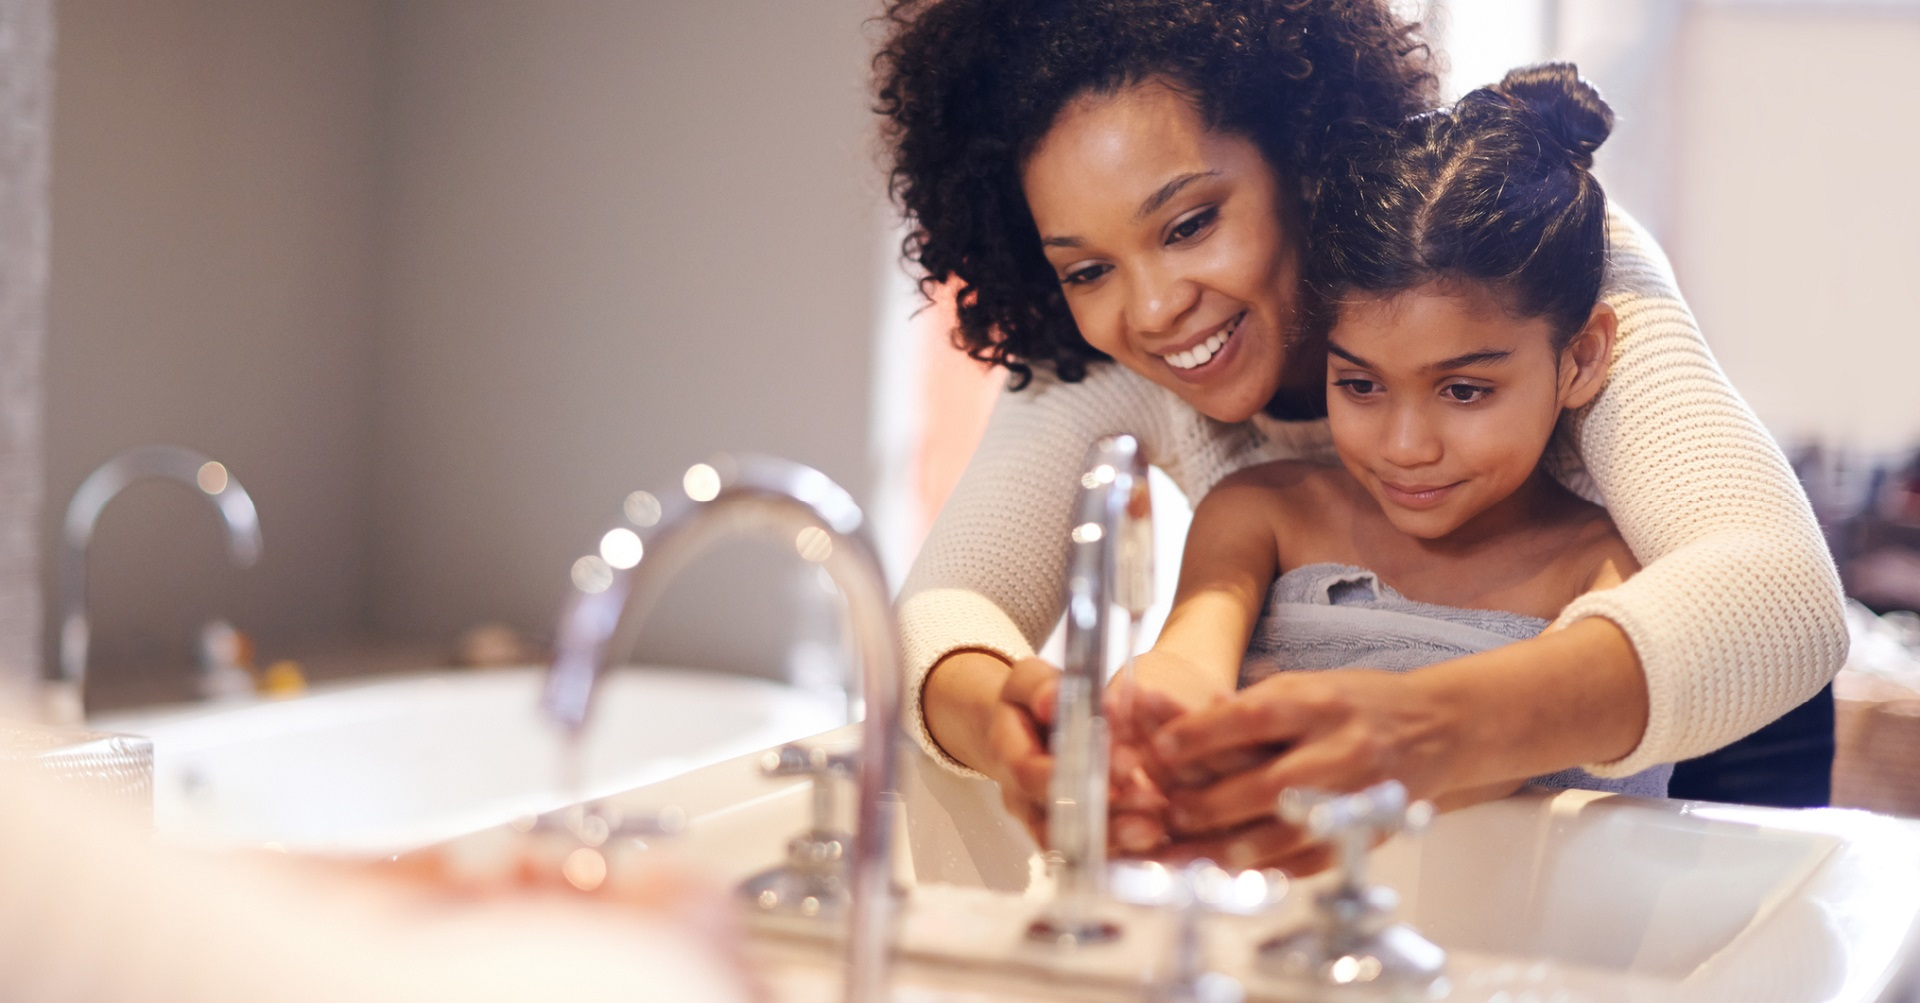 mother washing daughters hands in sink